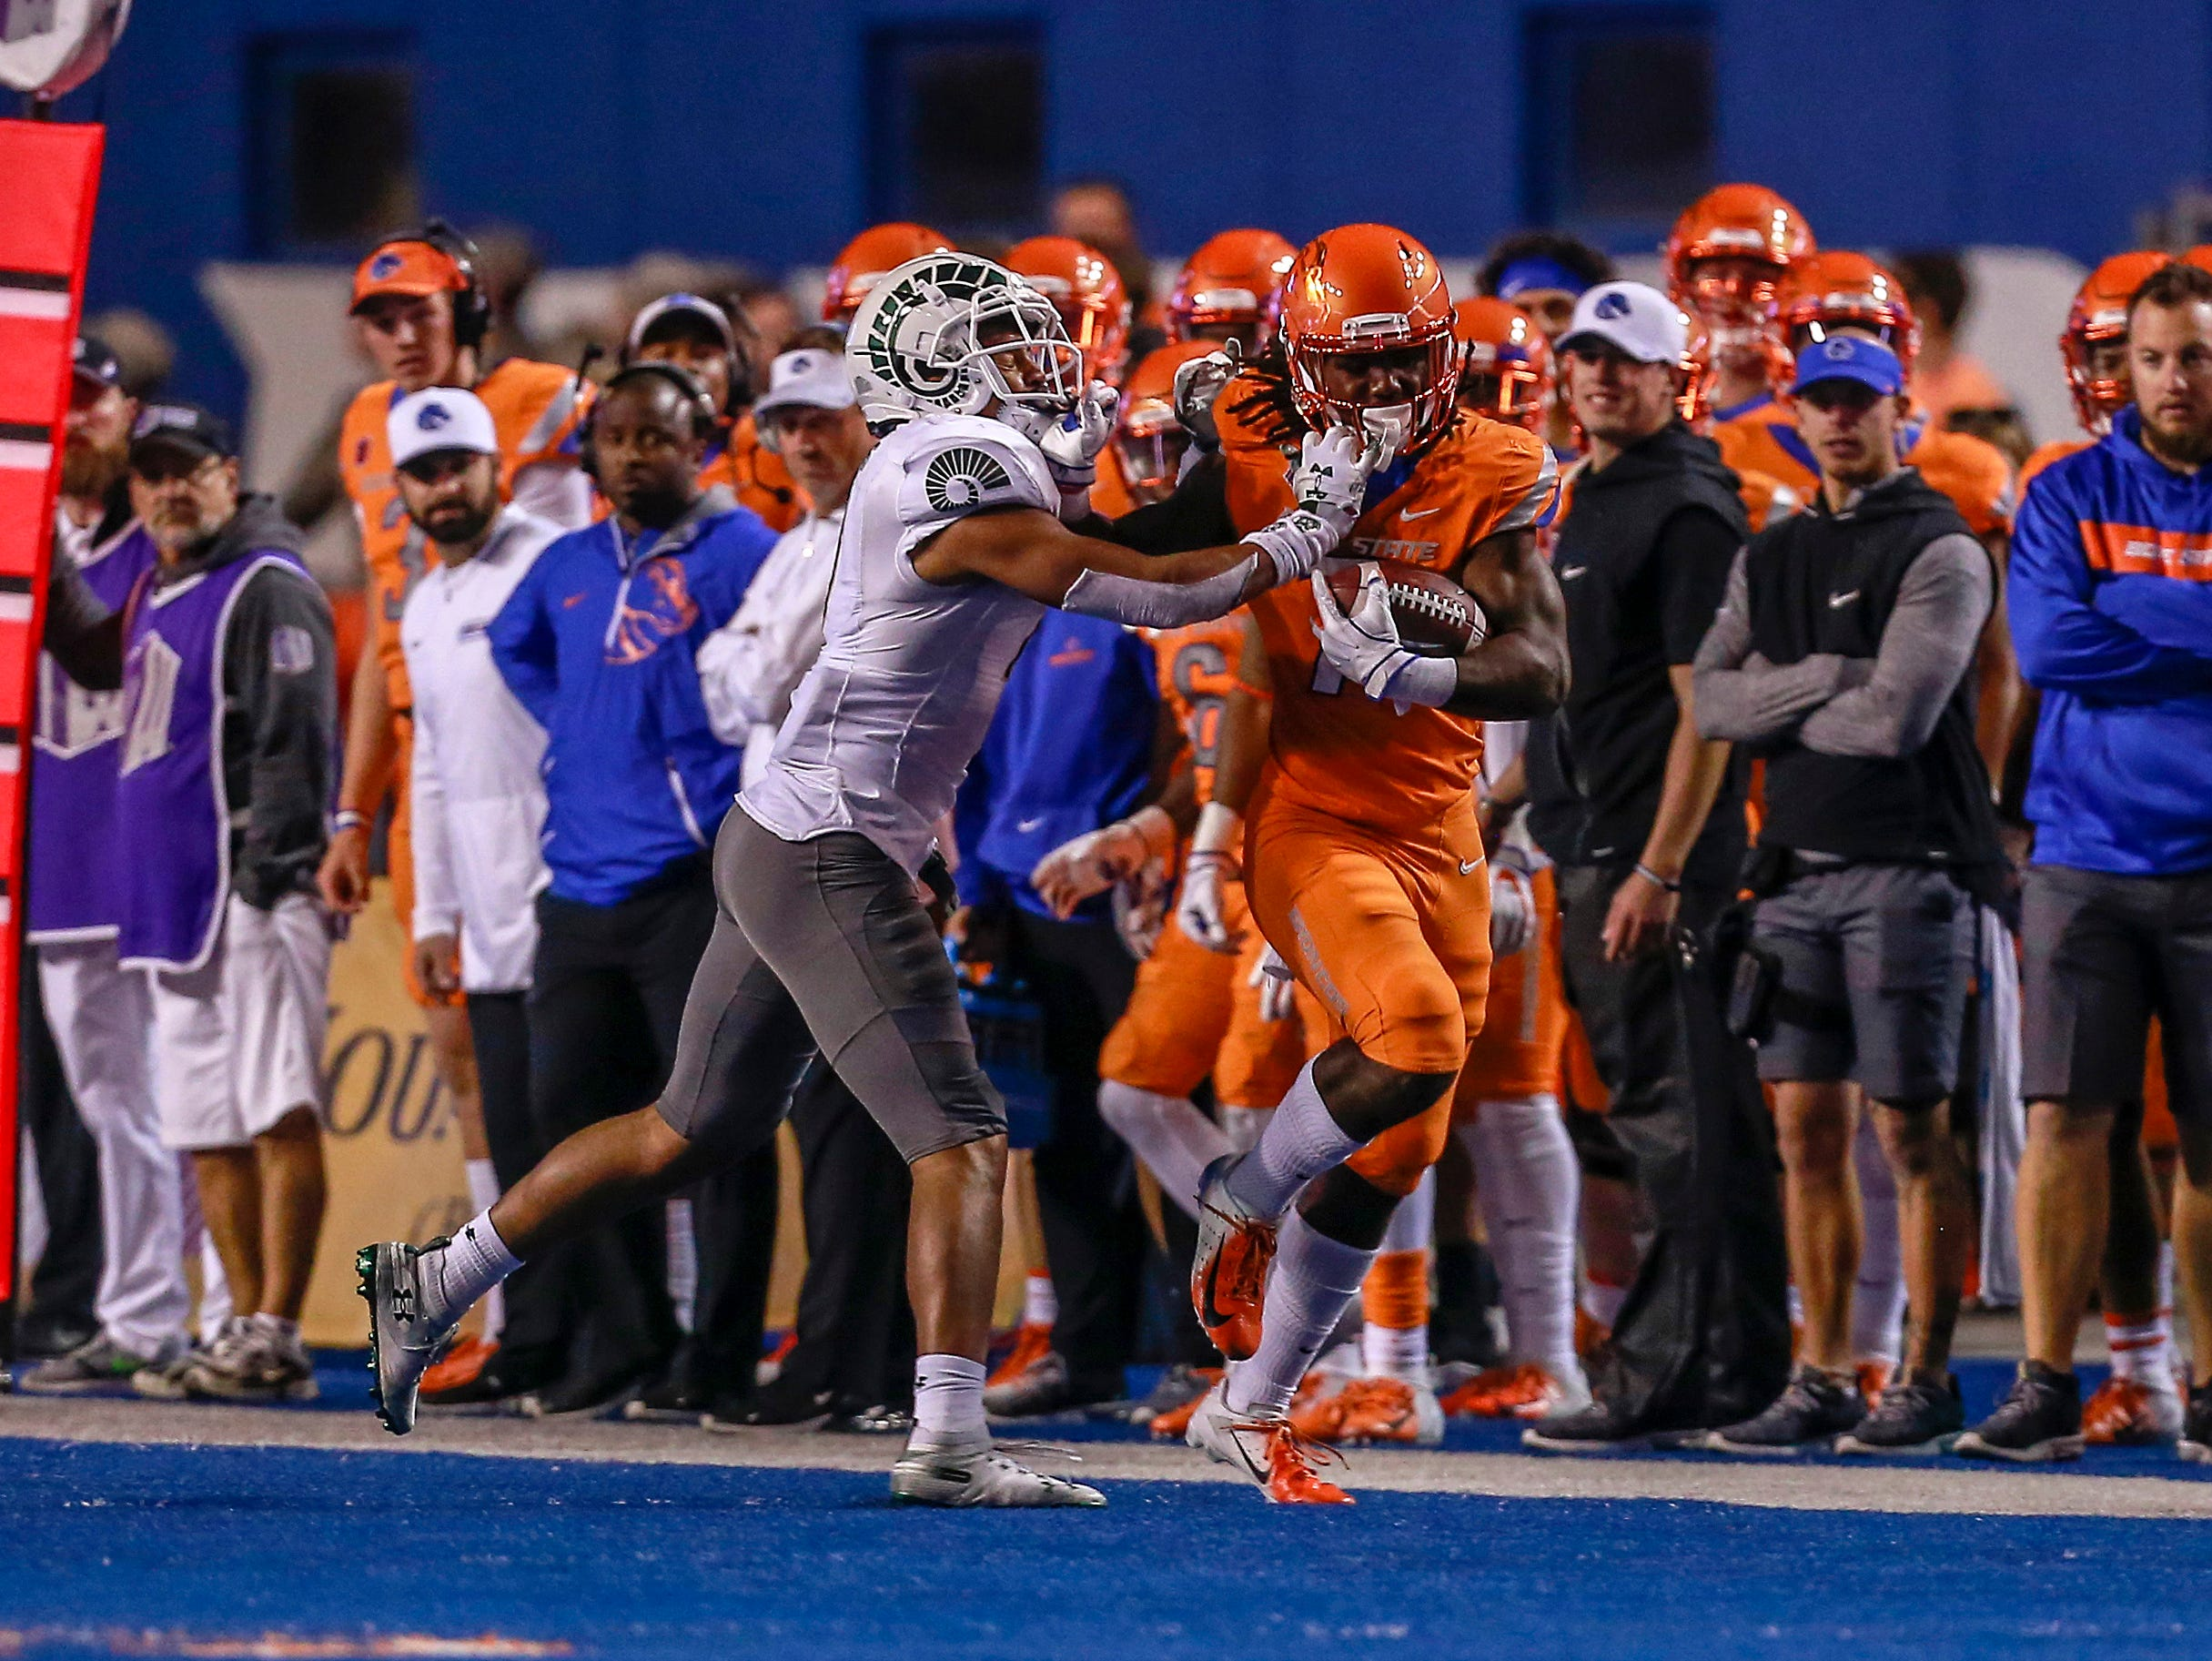 Boise State Broncos wide receiver A.J. Richardson (7) is forced out of bounds by Colorado State Rams safety Jamal Hicks (7) during the second half at Albertsons Stadium.